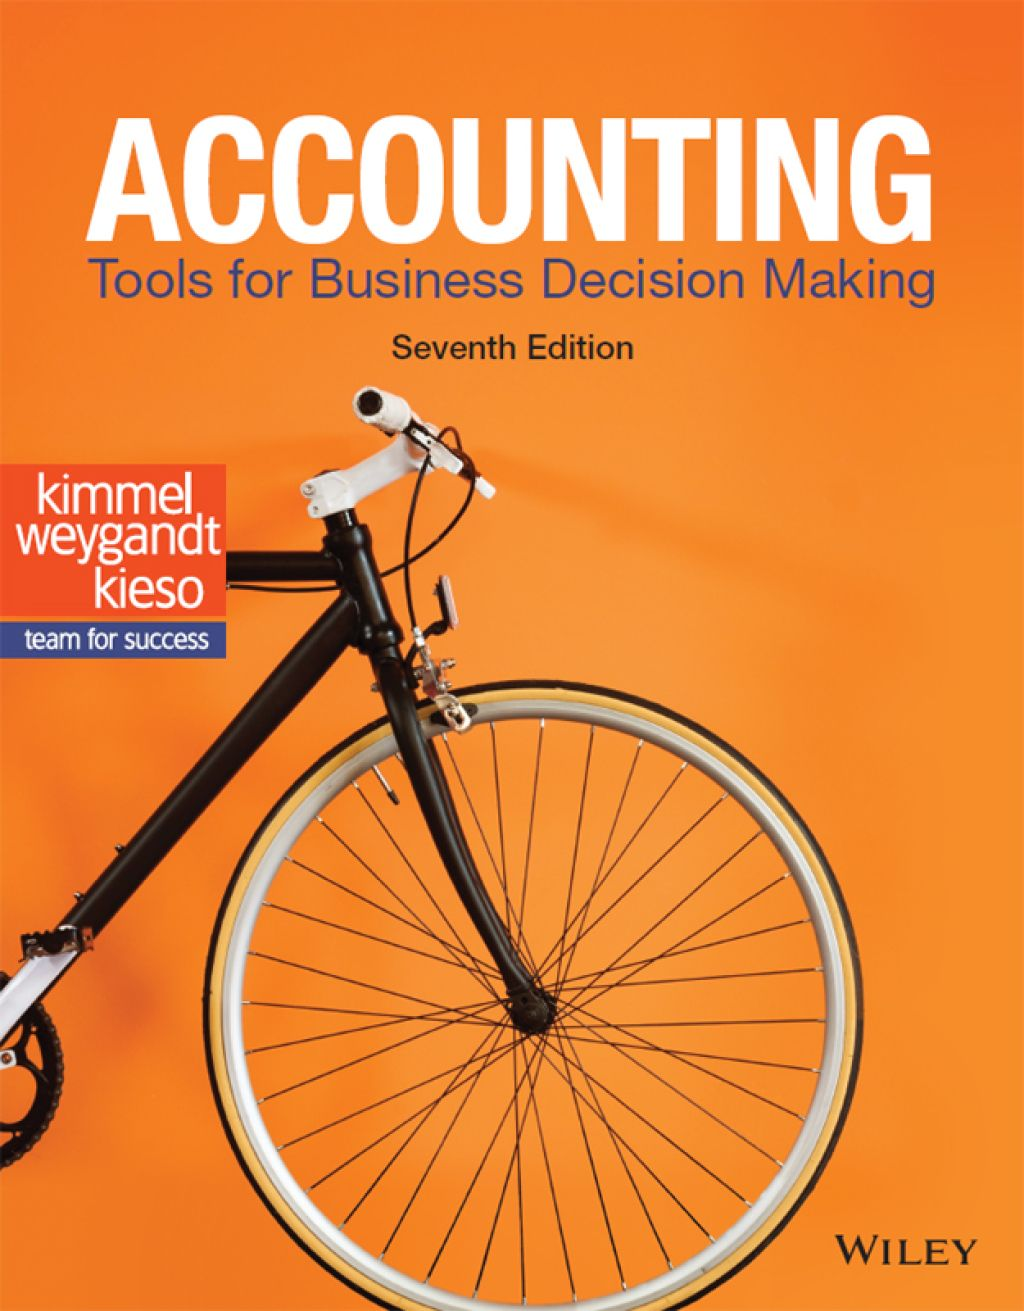 Accounting Tools For Business Decision Making Ebook